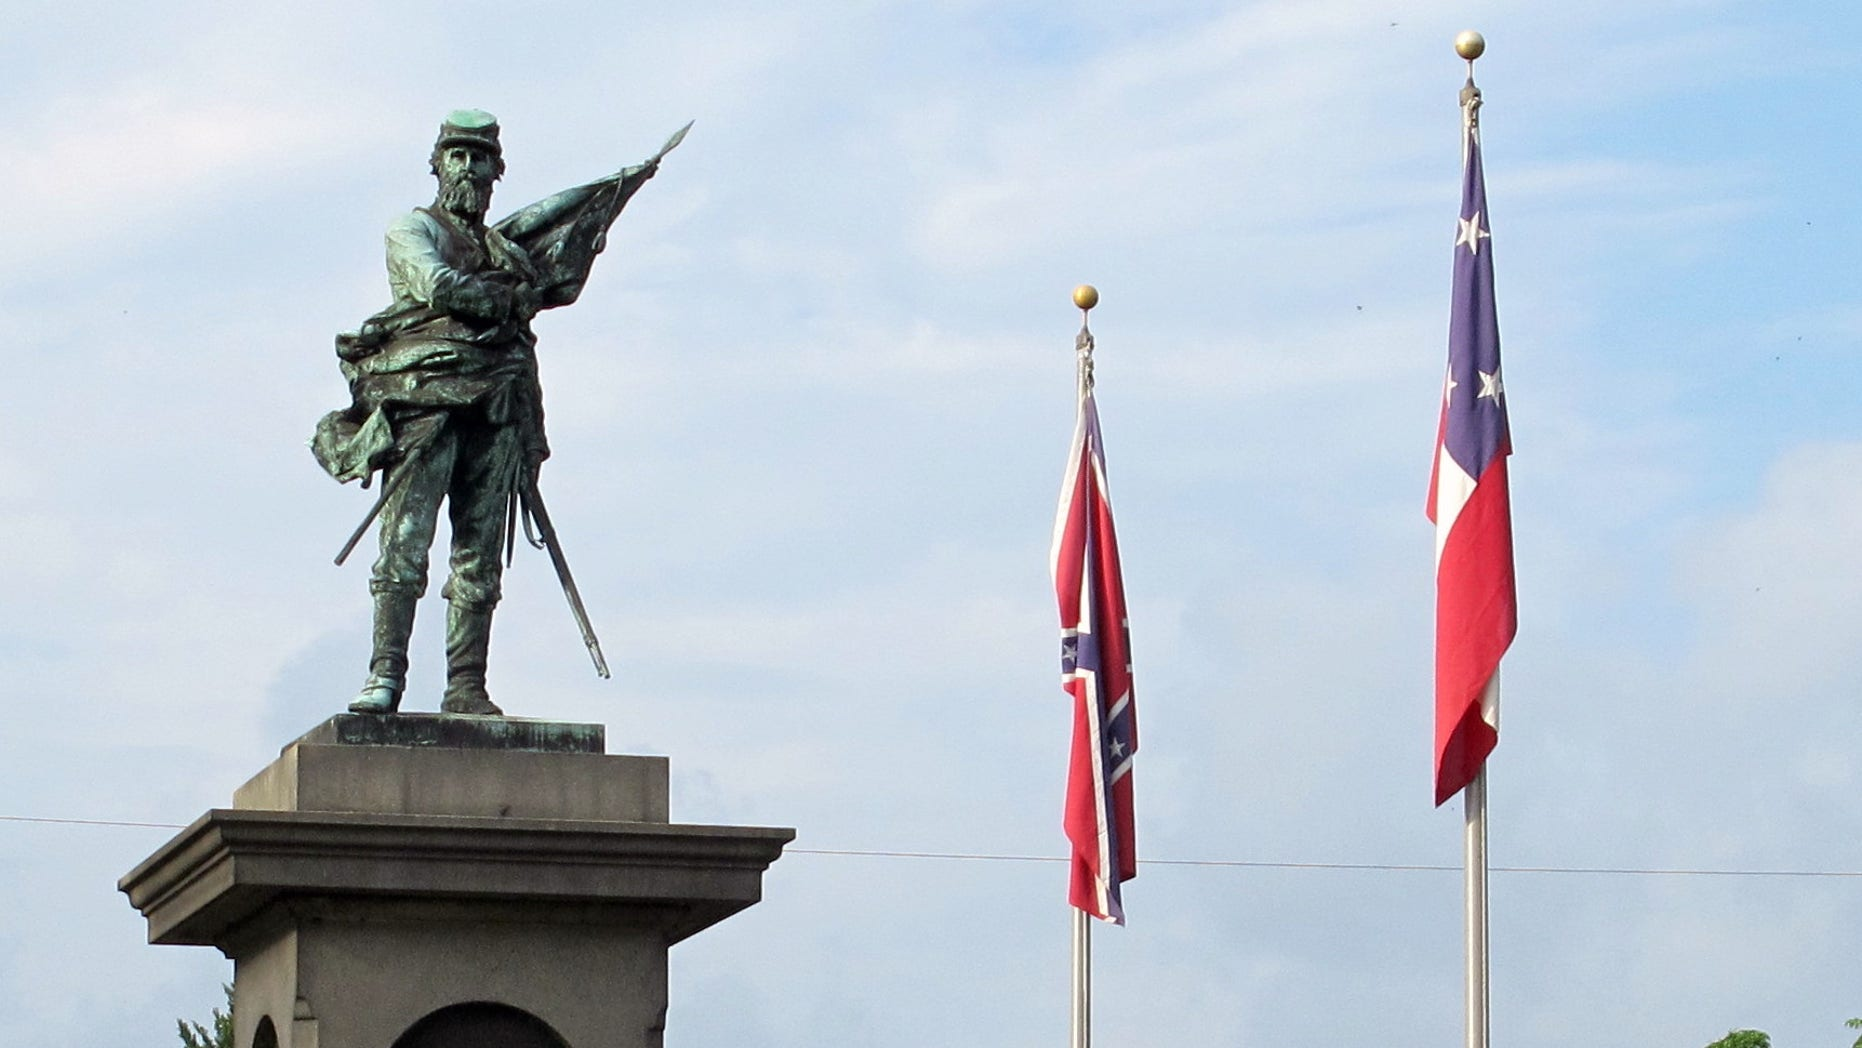 """Confederate flags fly near a monument at Magnolia Cemetery in Charleston., S.C., on Tuesday, May 10, 2016. On this day in 1863, Confederate Gen. Thomas """"Stonewall"""" Jackson died.  May 10 is observed as Confederate Memorial Day in the Carolinas.  (AP Photo/Bruce Smith)"""